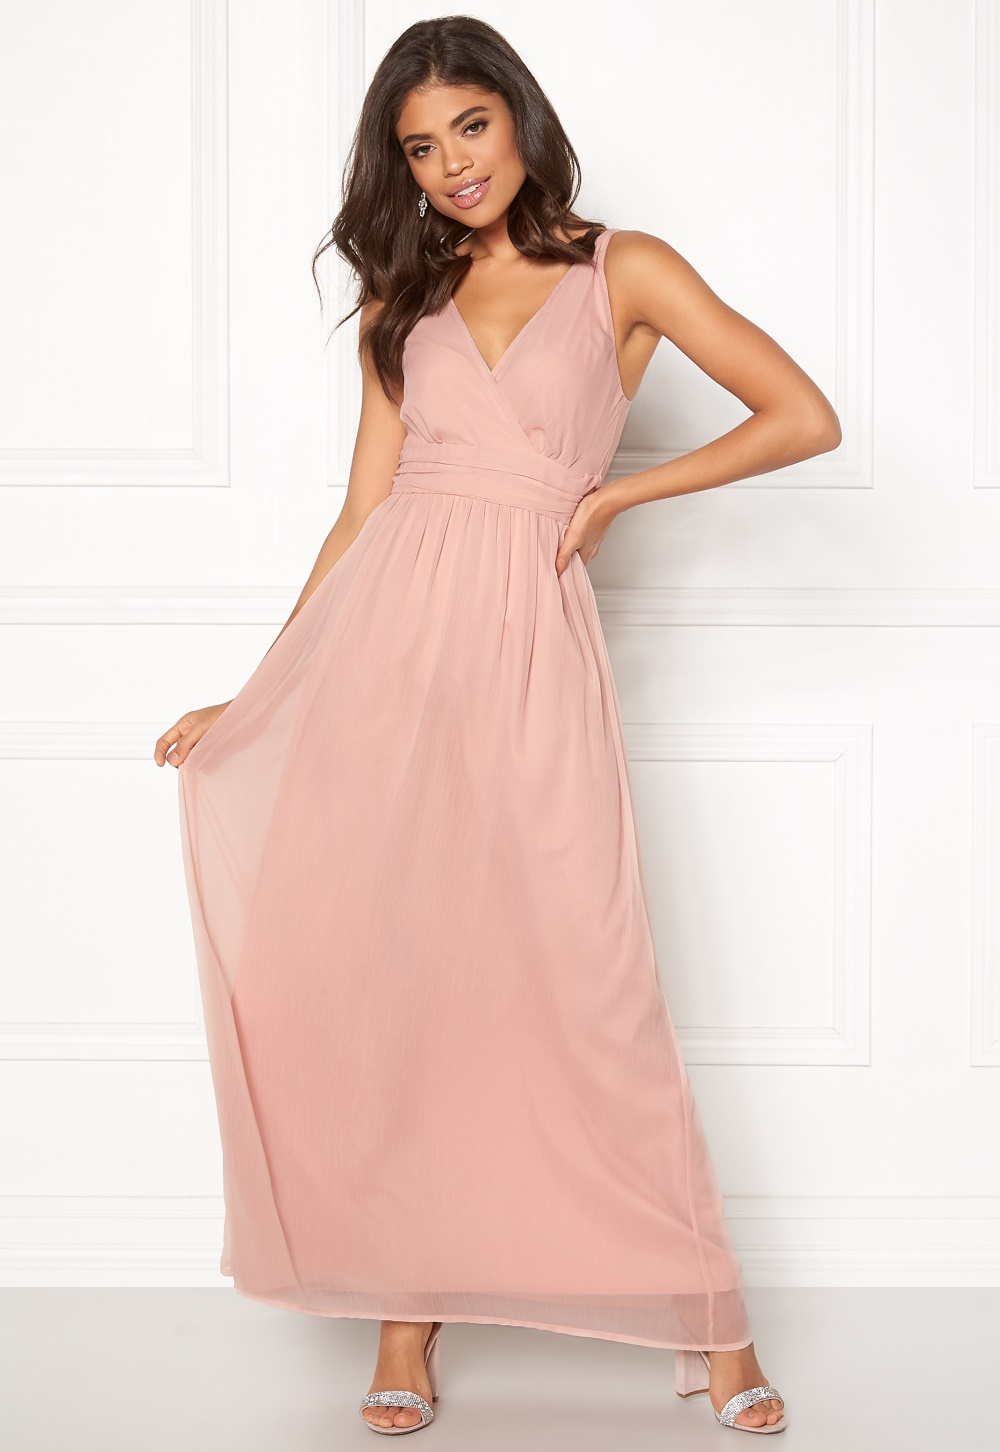 069927306c6a VERO MODA Josephine SL Maxi Dress Misty Rose - Bubbleroom